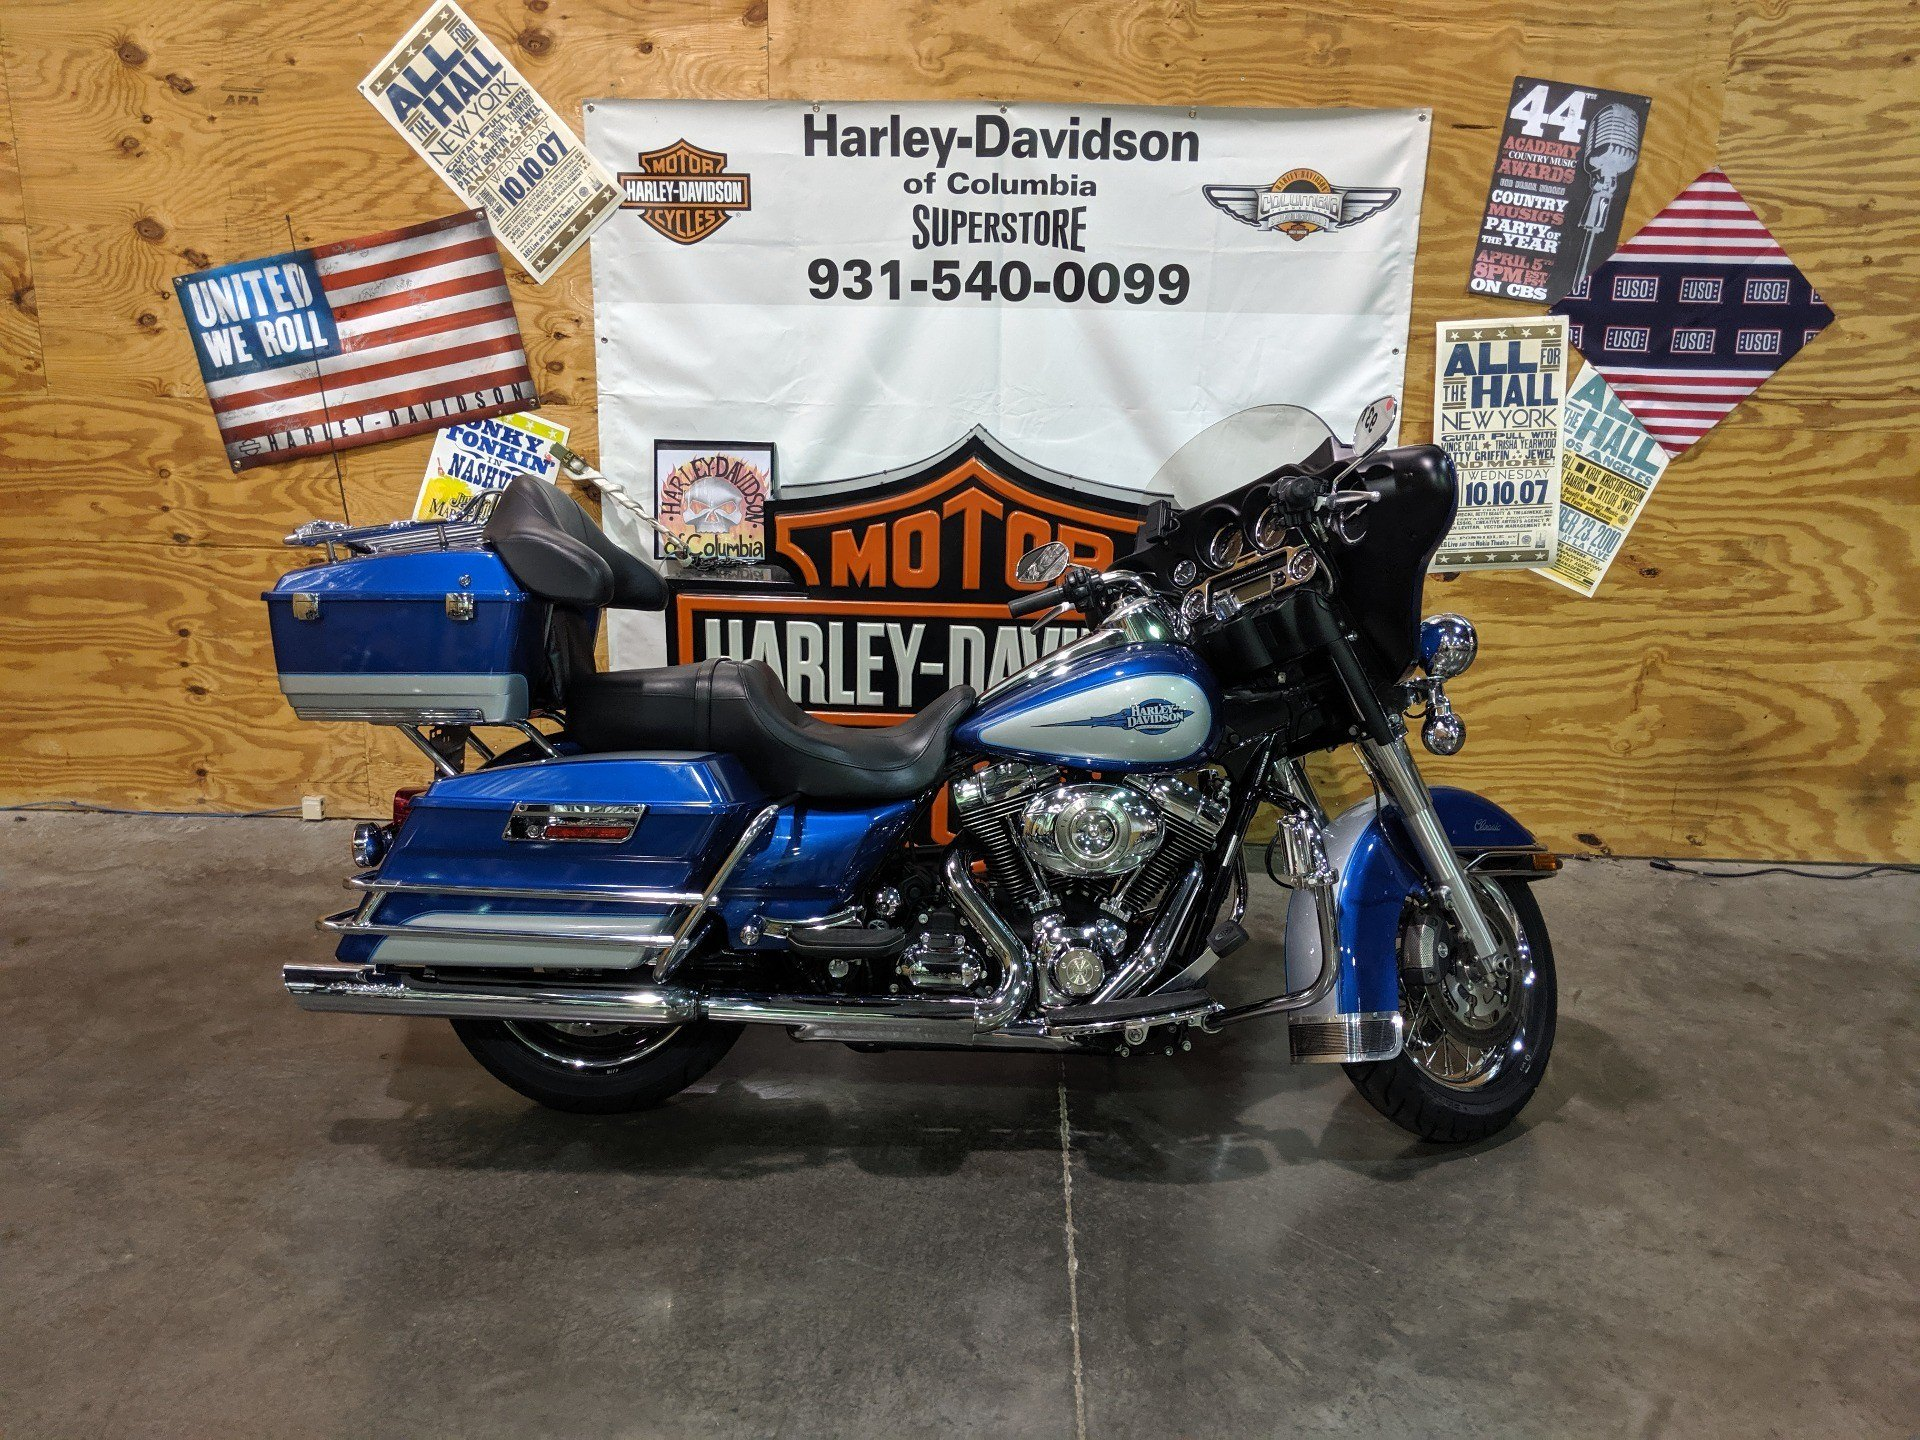 2010 Harley-Davidson FLHTCU in Columbia, Tennessee - Photo 1